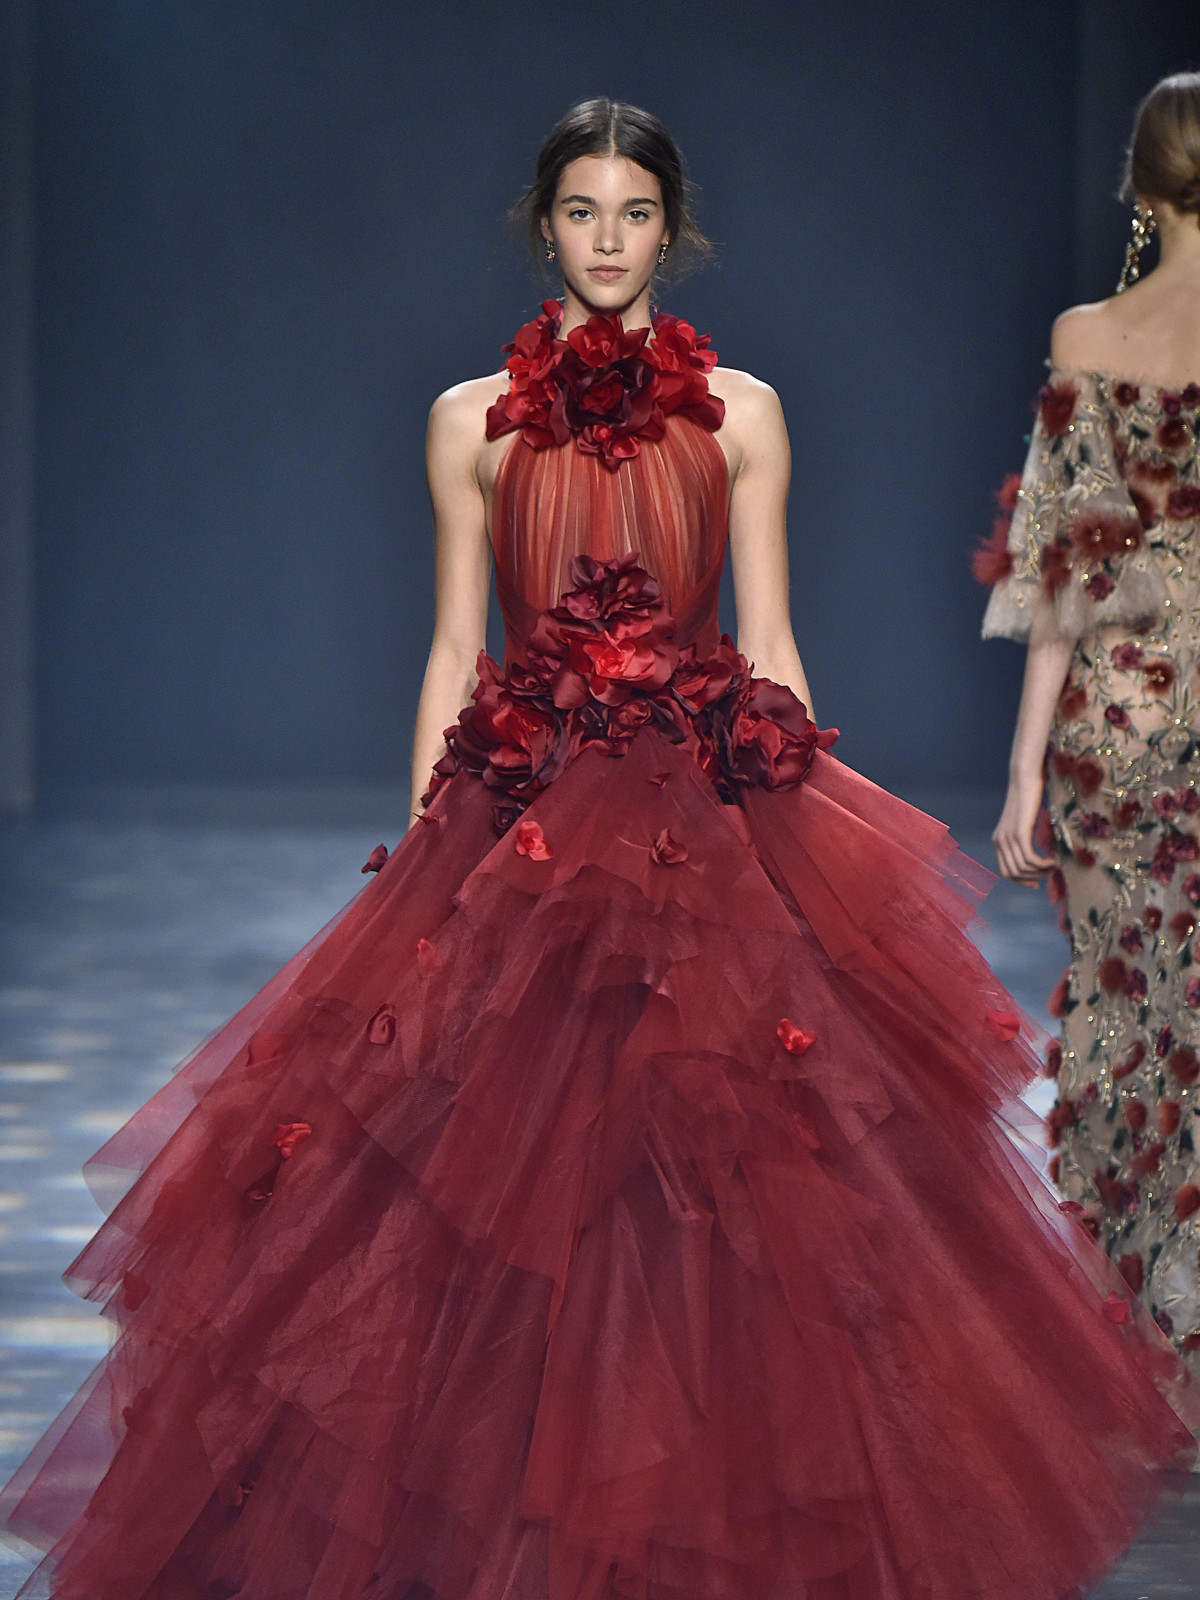 Marchesa Collection Features Magnificent Evening Gowns Fit For A